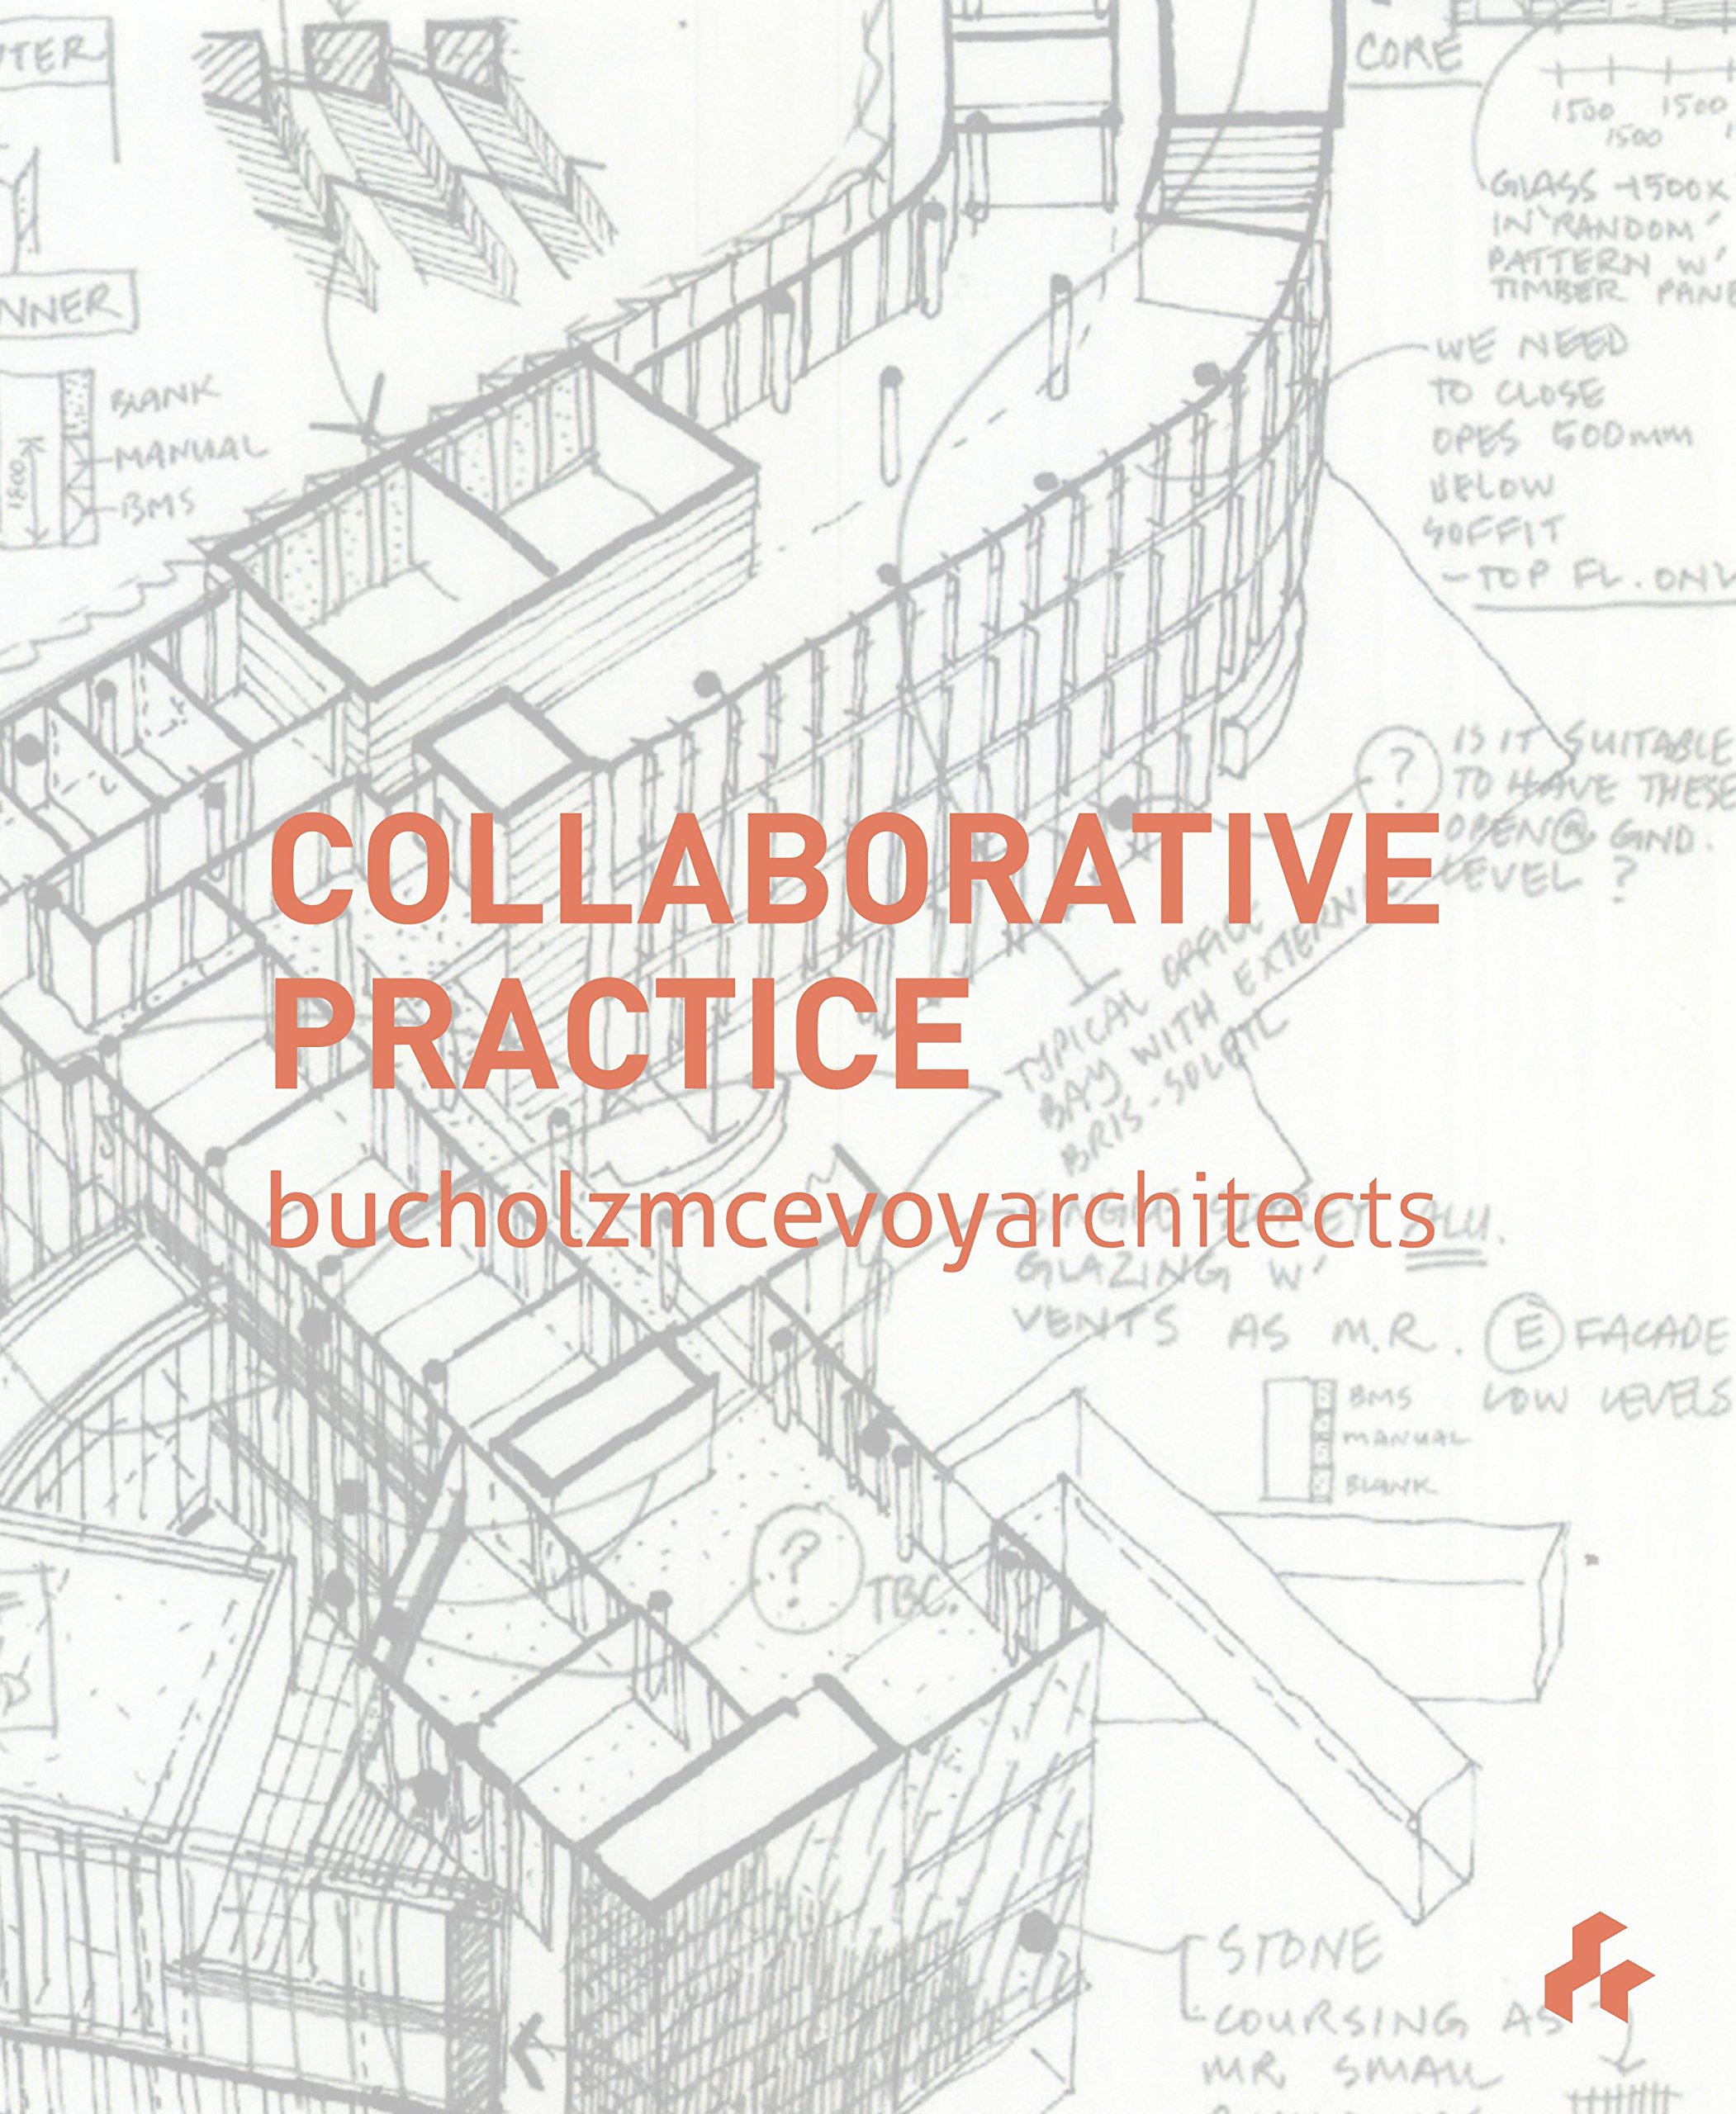 Bucholz McEvoy   Architects Collaborative Practice